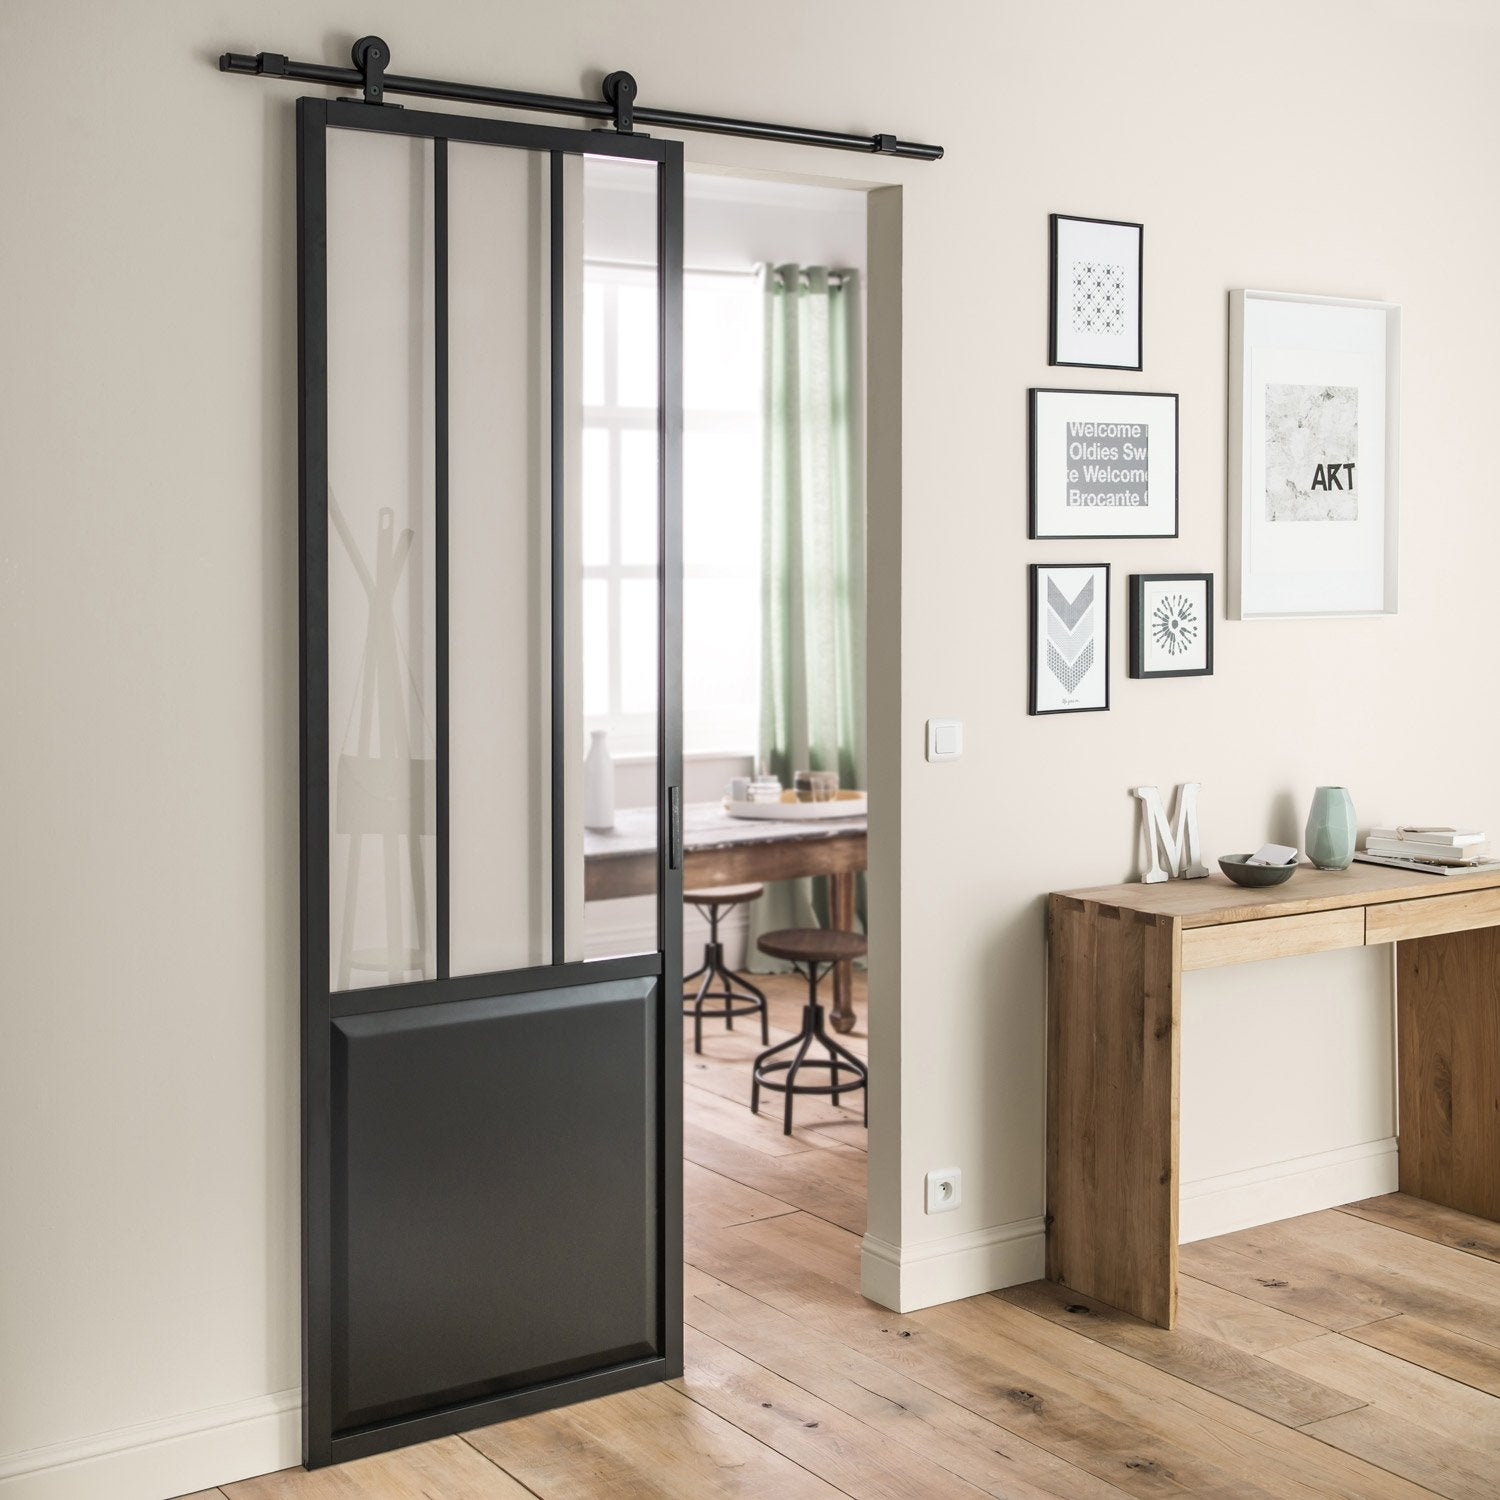 Ensemble porte coulissante atelier mdf rev tu avec le rail for Porte en verre leroy merlin